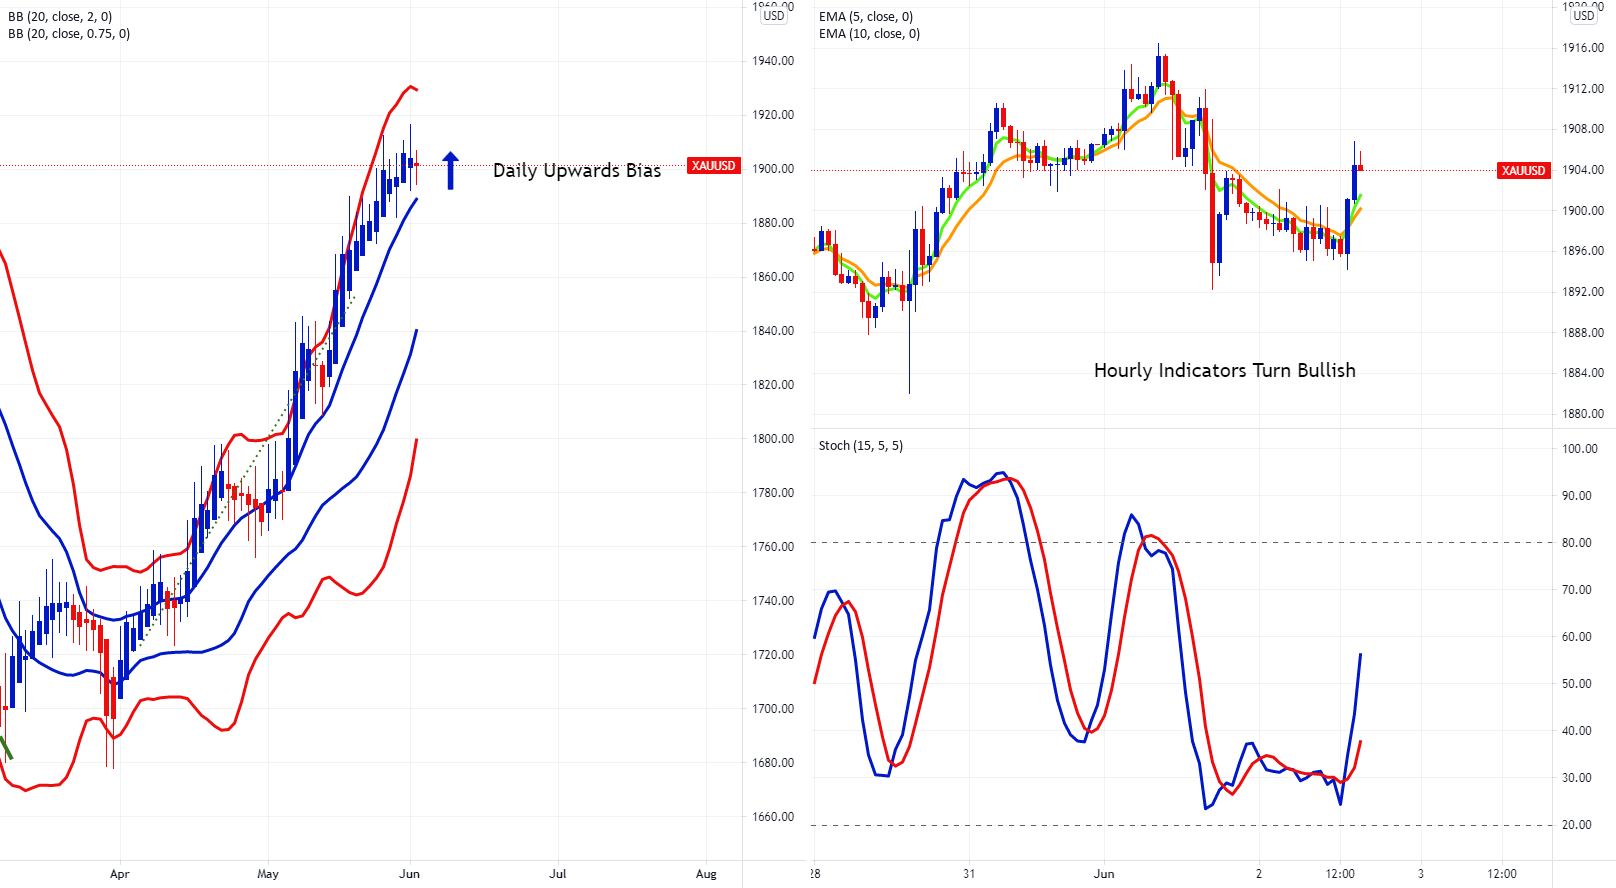 XAUUSD Buy The Dip Opportunity? for FX:XAUUSD by FXCM